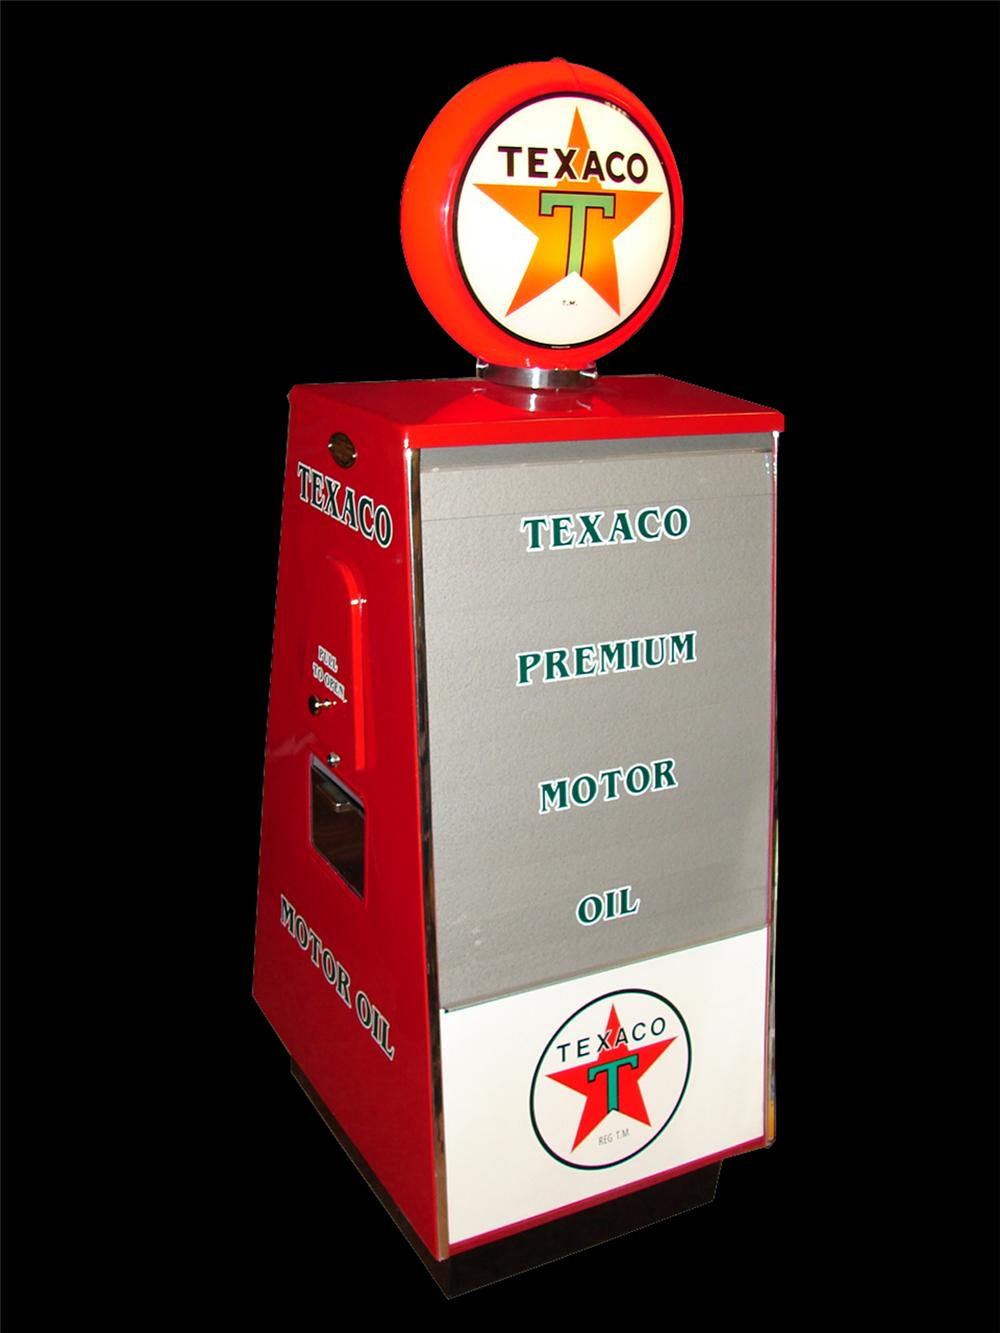 Awesome 1950s Texaco Sel-Oil restored fuel island oil display cabinet. - Front 3/4 - 89555